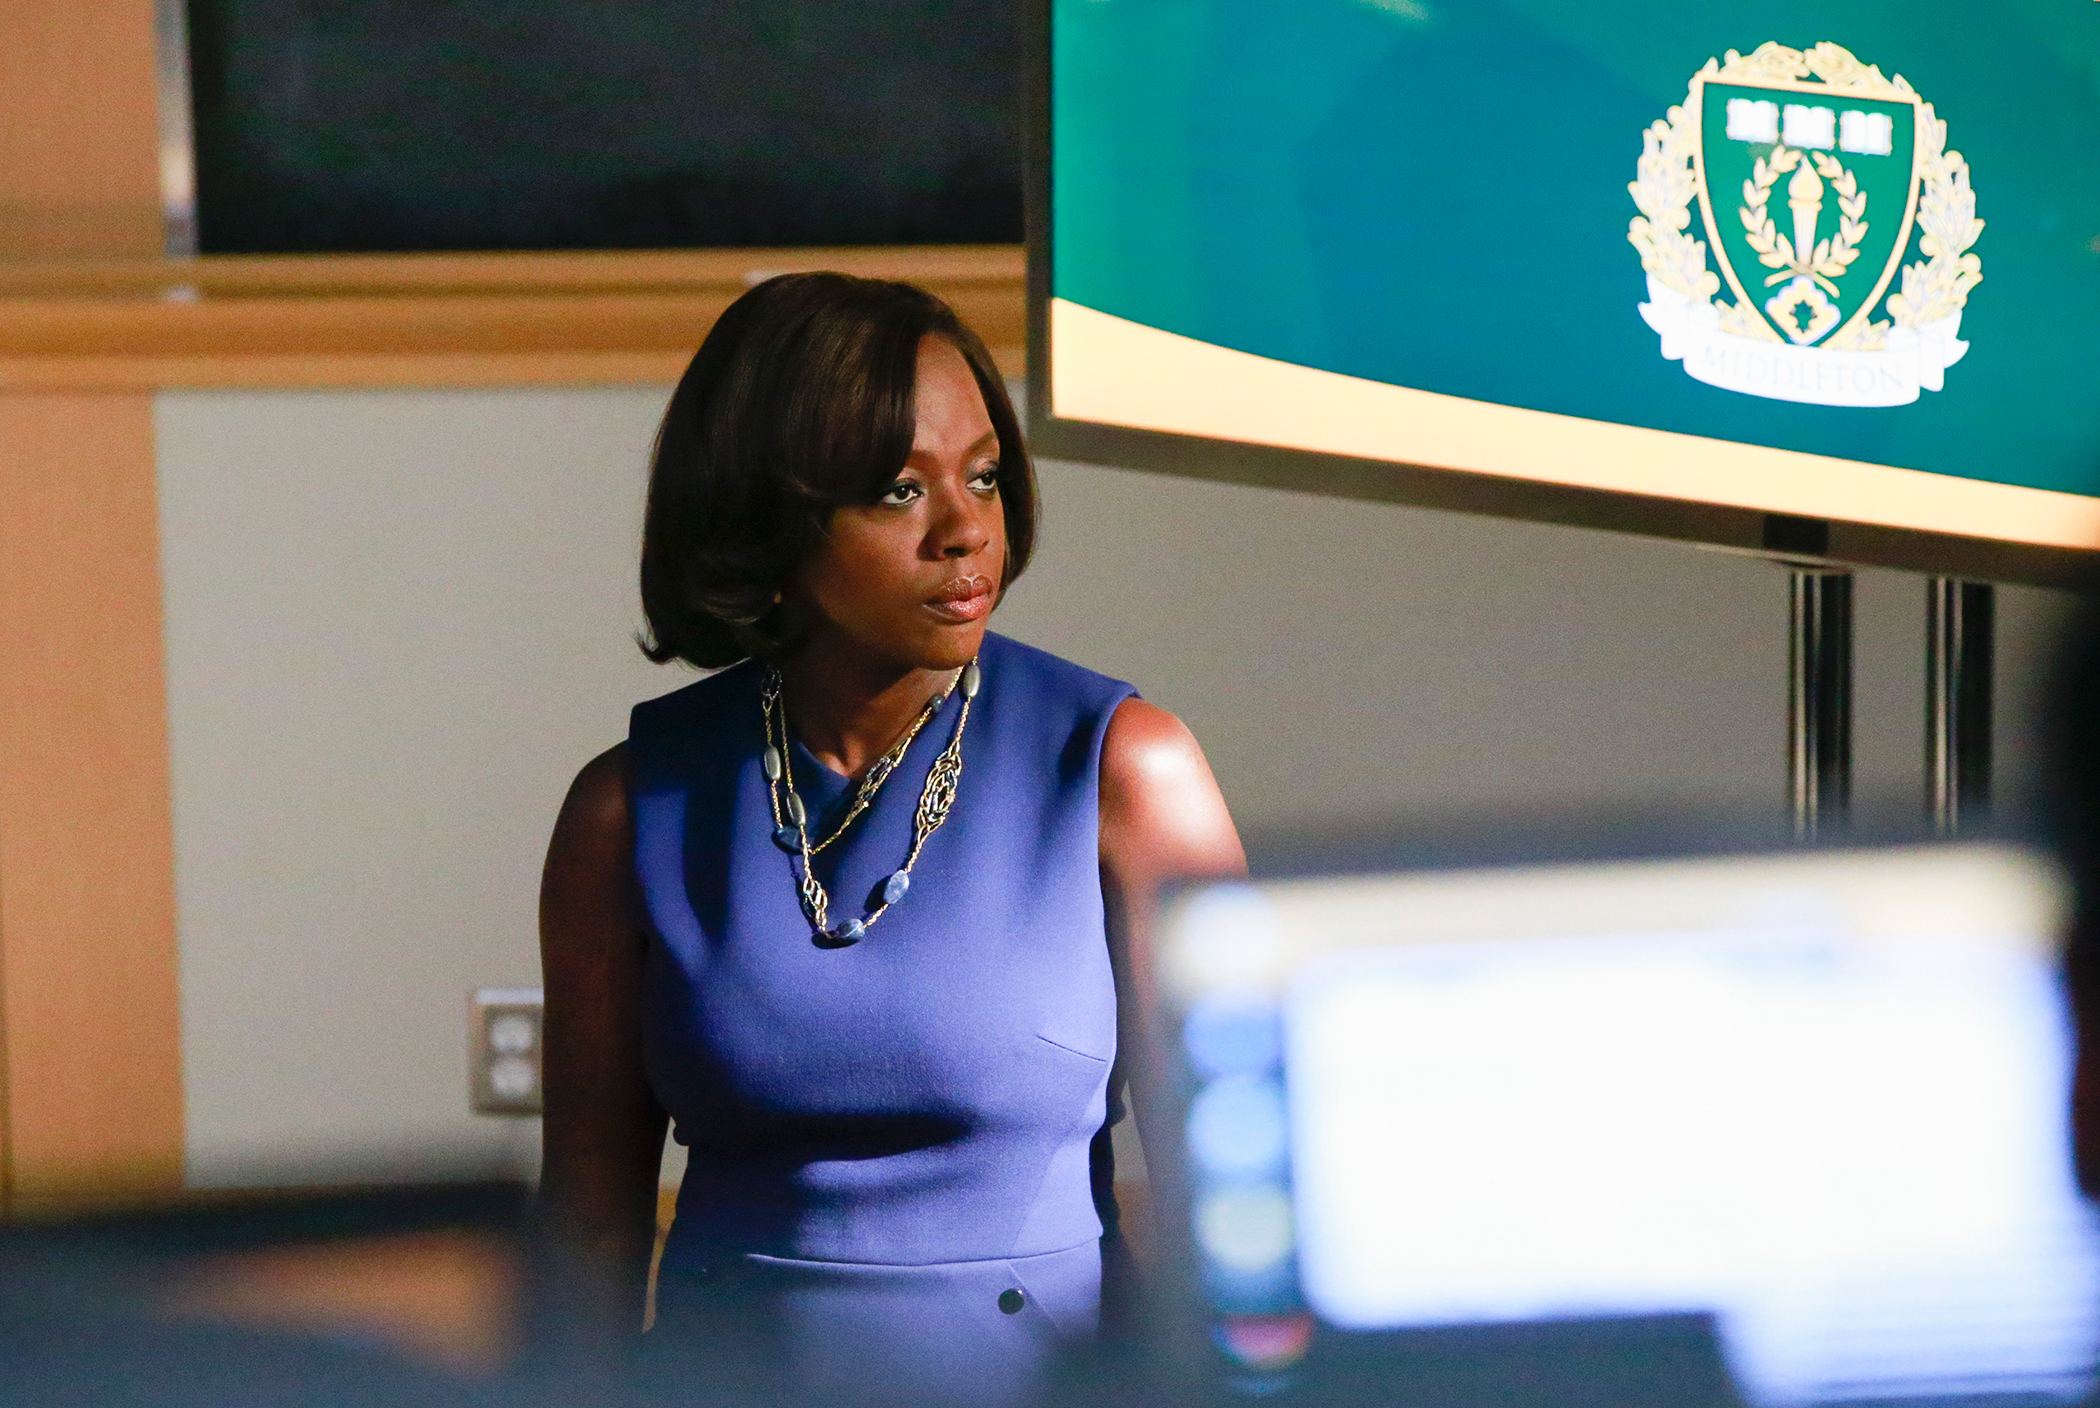 """Viola Davis as Annalise Keating in """"How To Get Away With Murder"""" on ABC"""